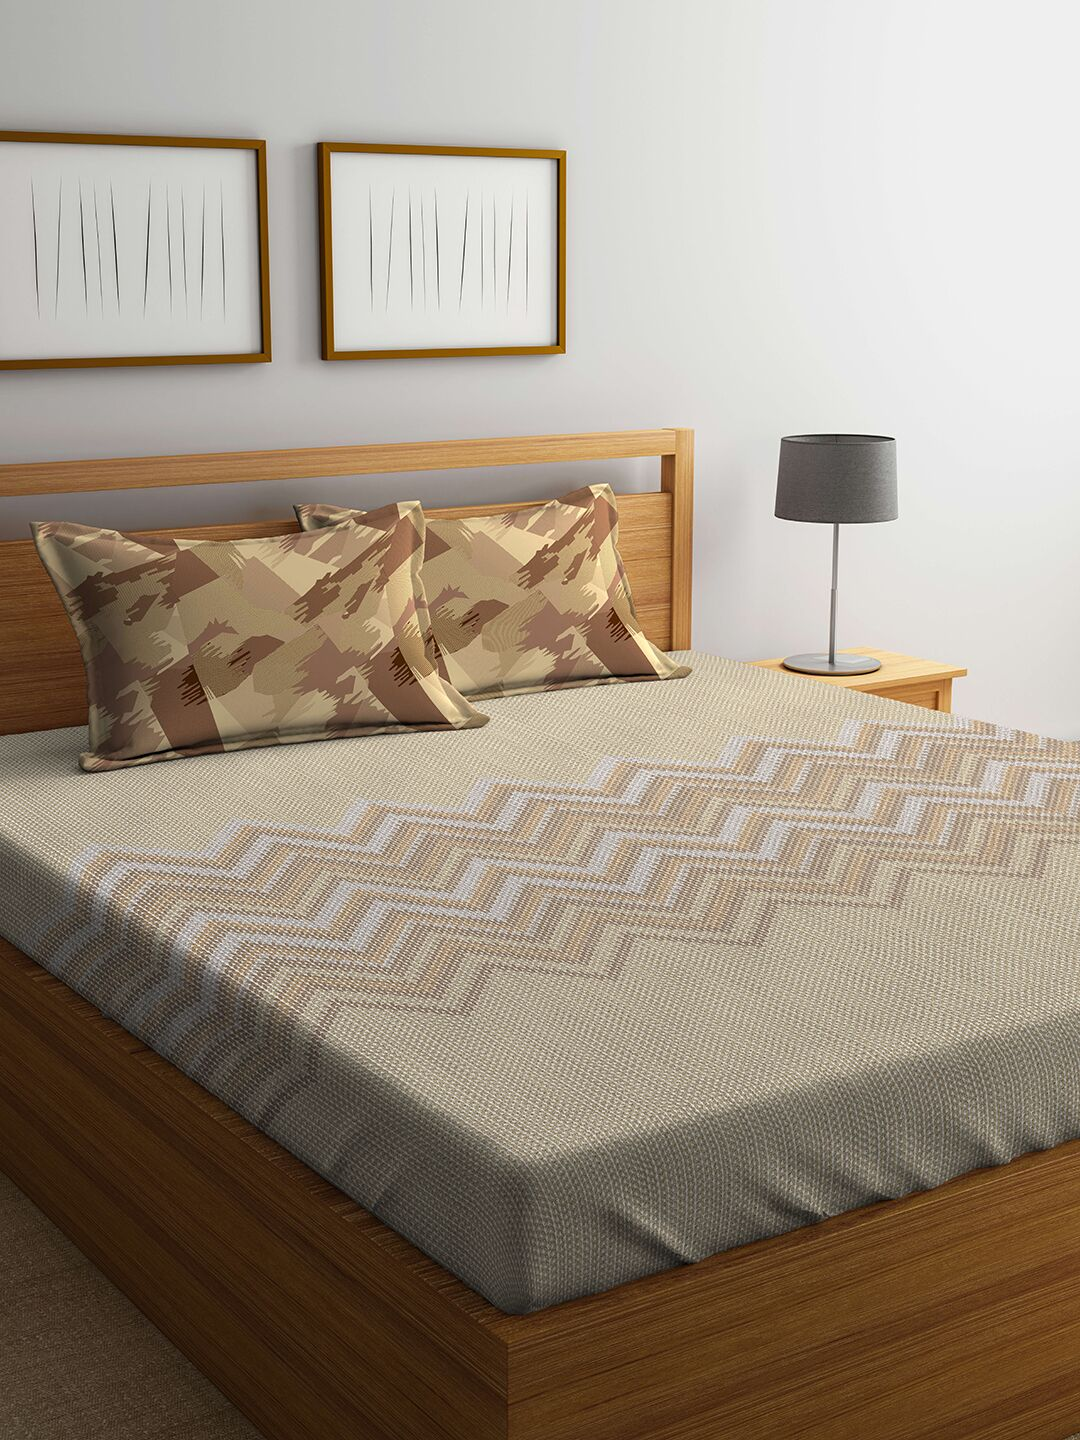 Candence Cotton Mix Bed Sheets in Multicolour Colour by Portico